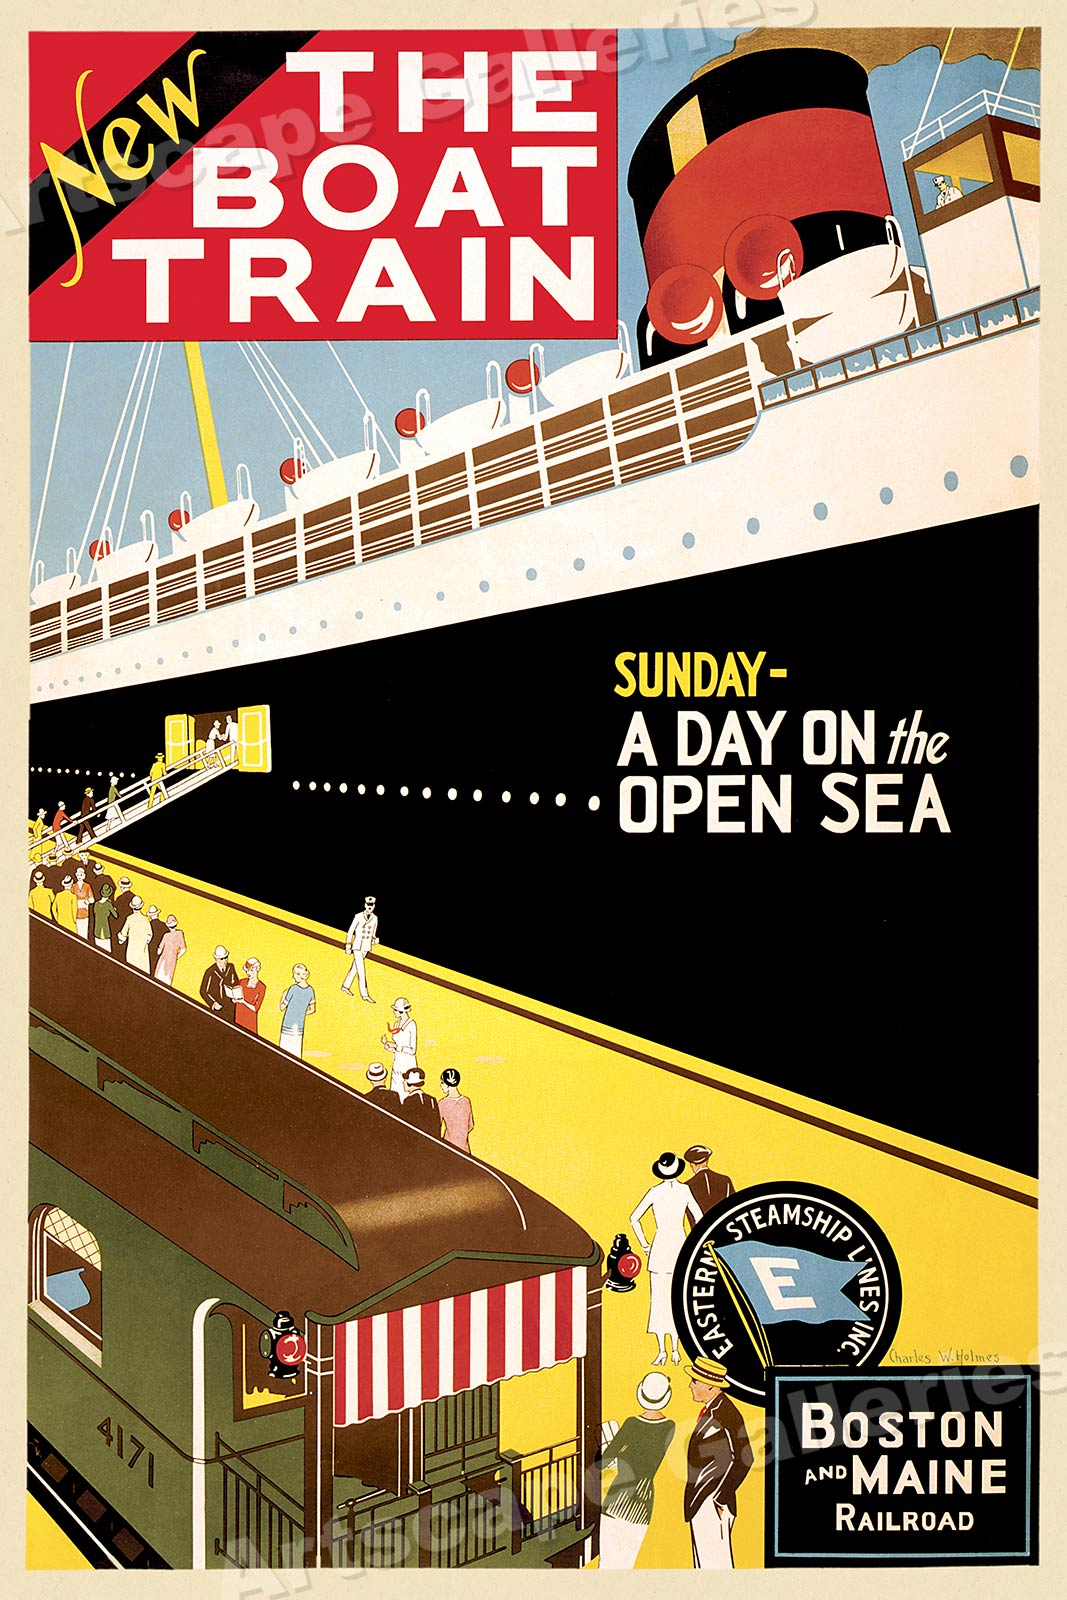 20x30 1940s Vintage Style Railroad Travel Poster See Boulder Dam